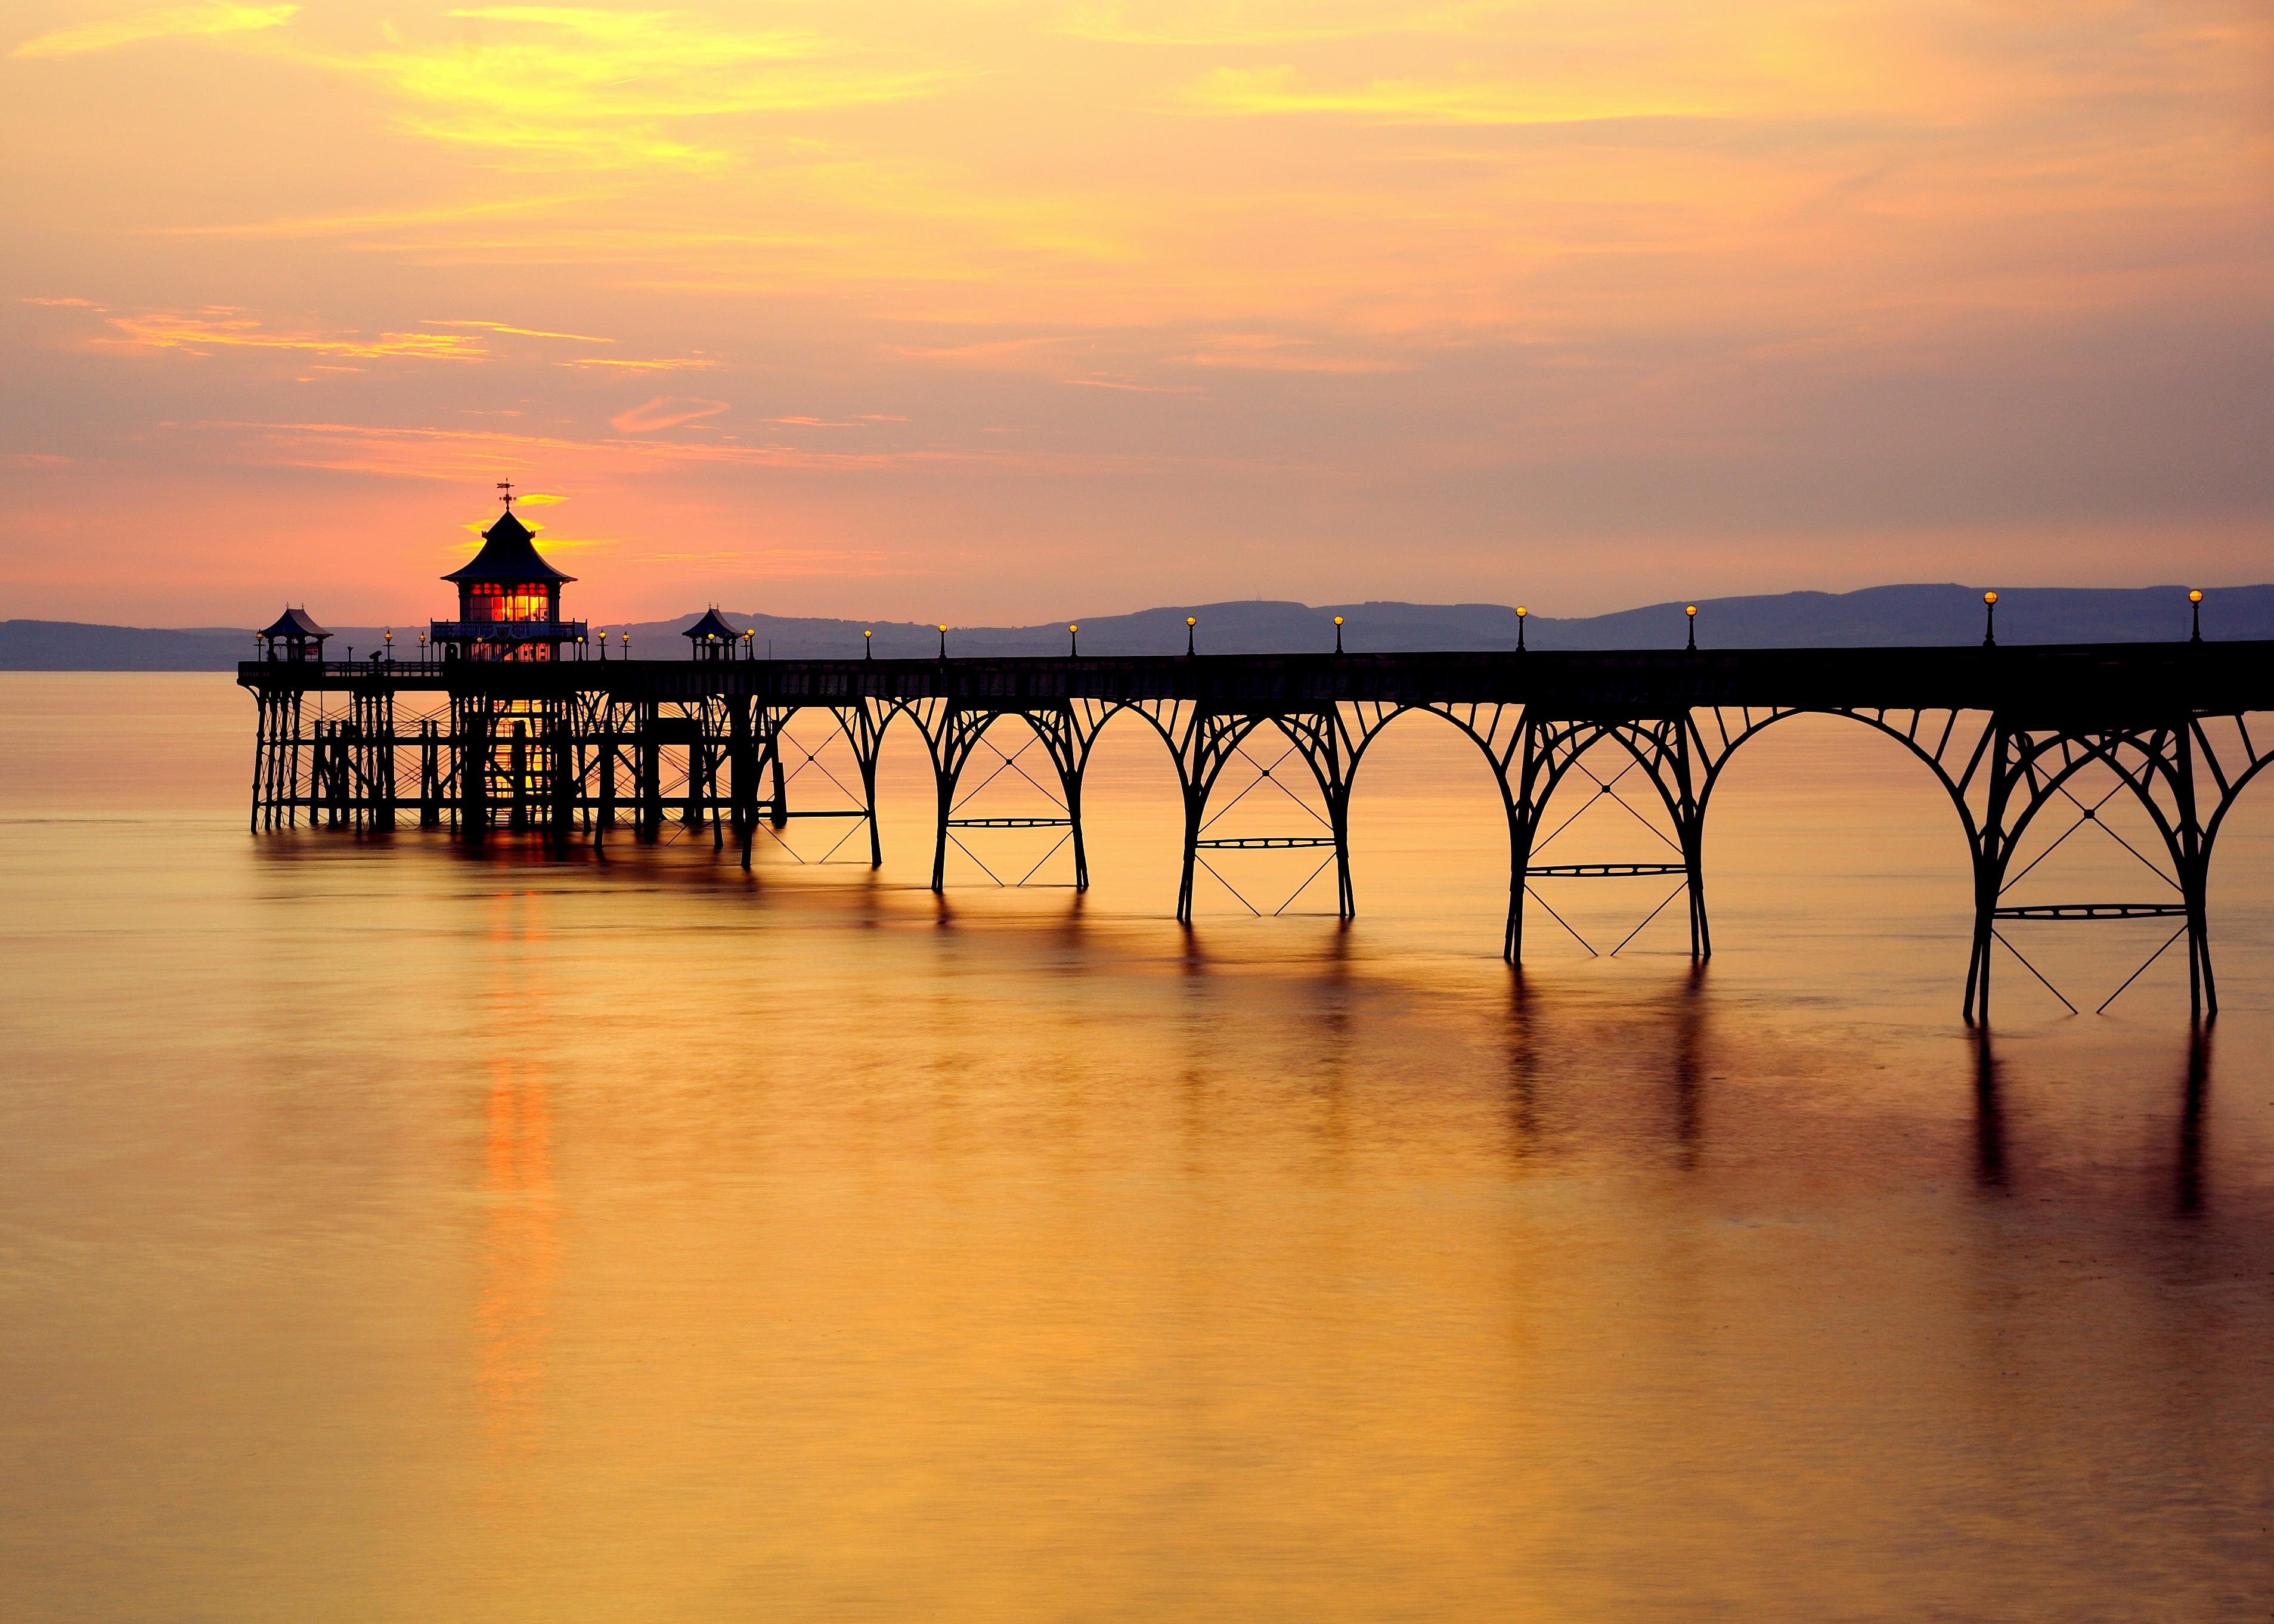 Clevedon Pier克利夫登碼頭By Saffron Blaze (Own work) [CC BY-SA 3.0 (http://creativecommons.org/licenses/by-sa/3.0)], via Wikimedia Commons